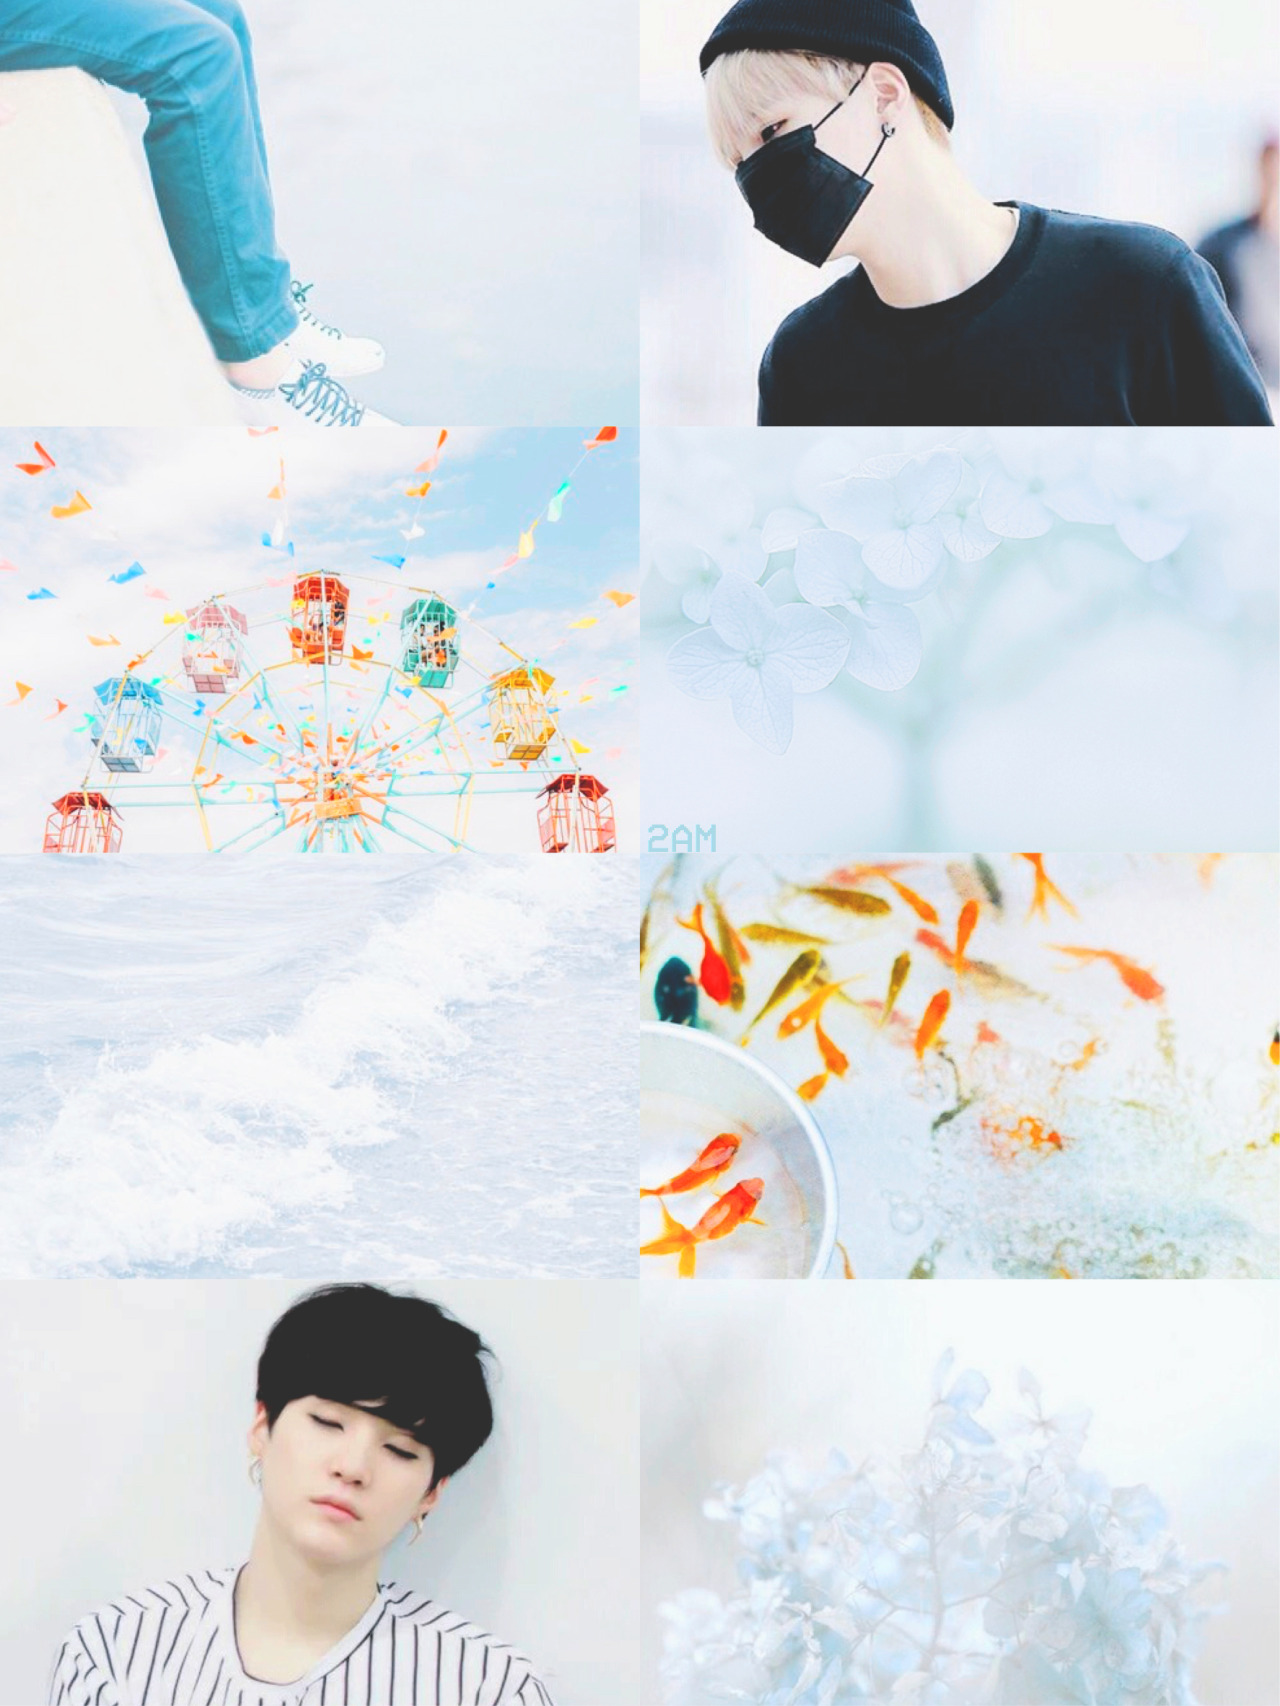 BTS-Suga-Bangtan-Boys-Min-Yoongi-wallpaper-wp6001207